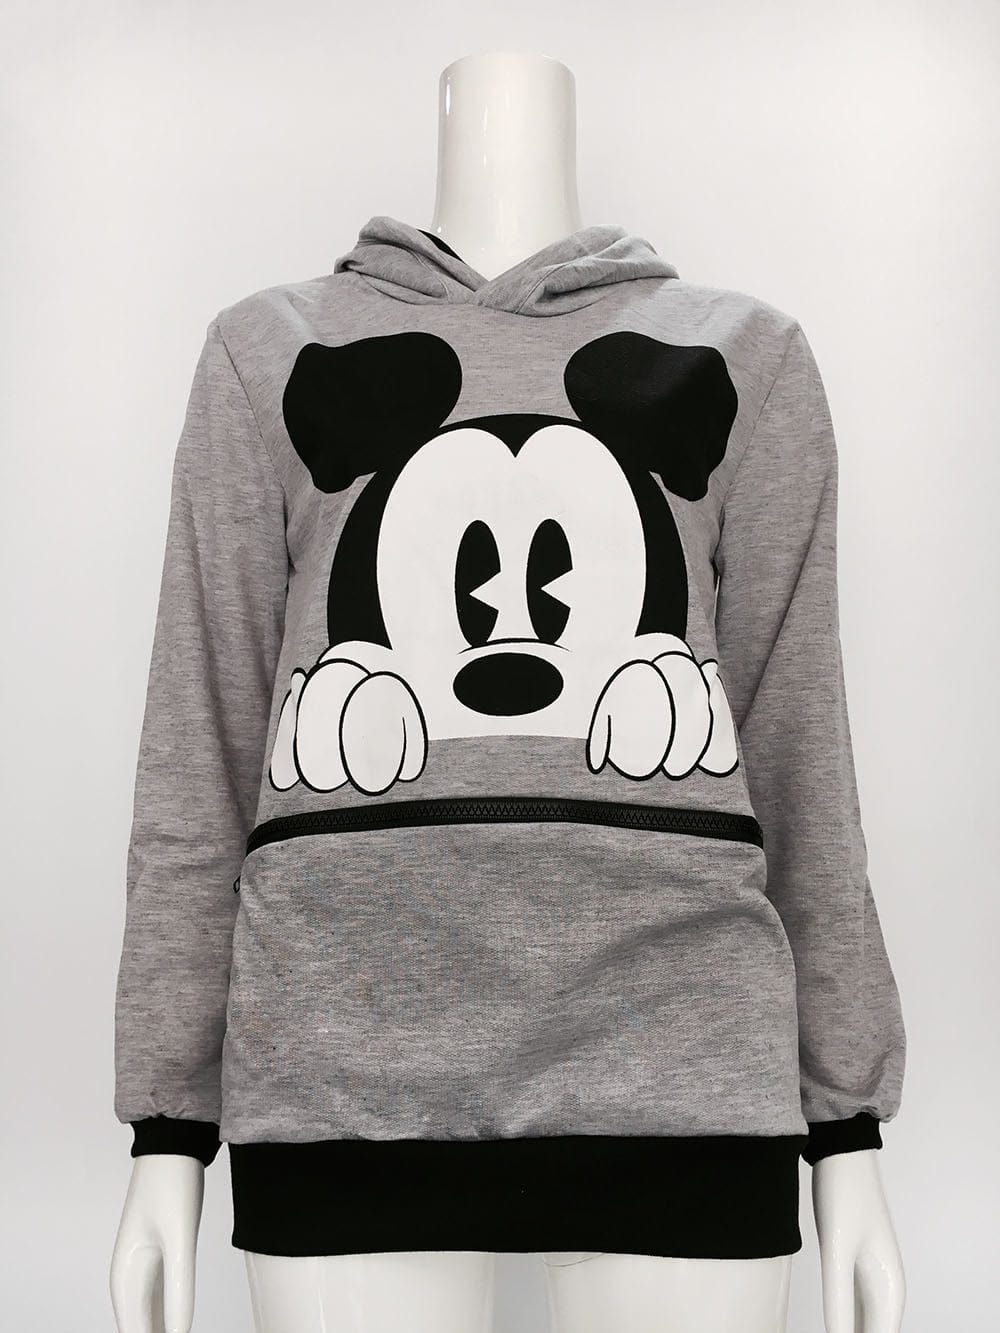 Aly Mickey Mouse Print Hooded Sweatshirt Woven Trends